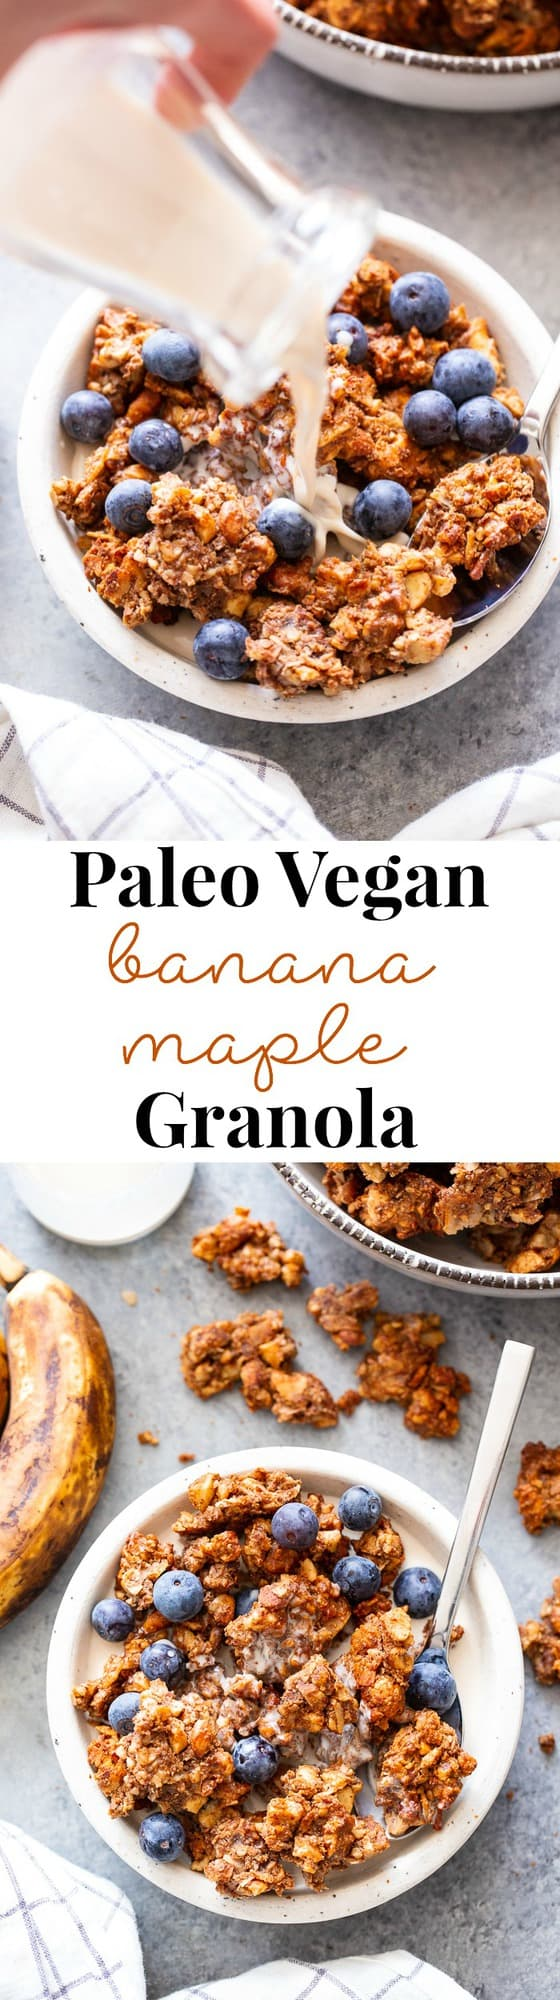 This banana maple nut paleo granola recipe is easy and totally addicting!  It's full of clusters, flavor, and crunch.   Great for topping dairy-free yogurt, as a cereal replacement with almond milk, or snacking on as-is.  It's grain-free, dairy-free, refined sugar free, and vegan.